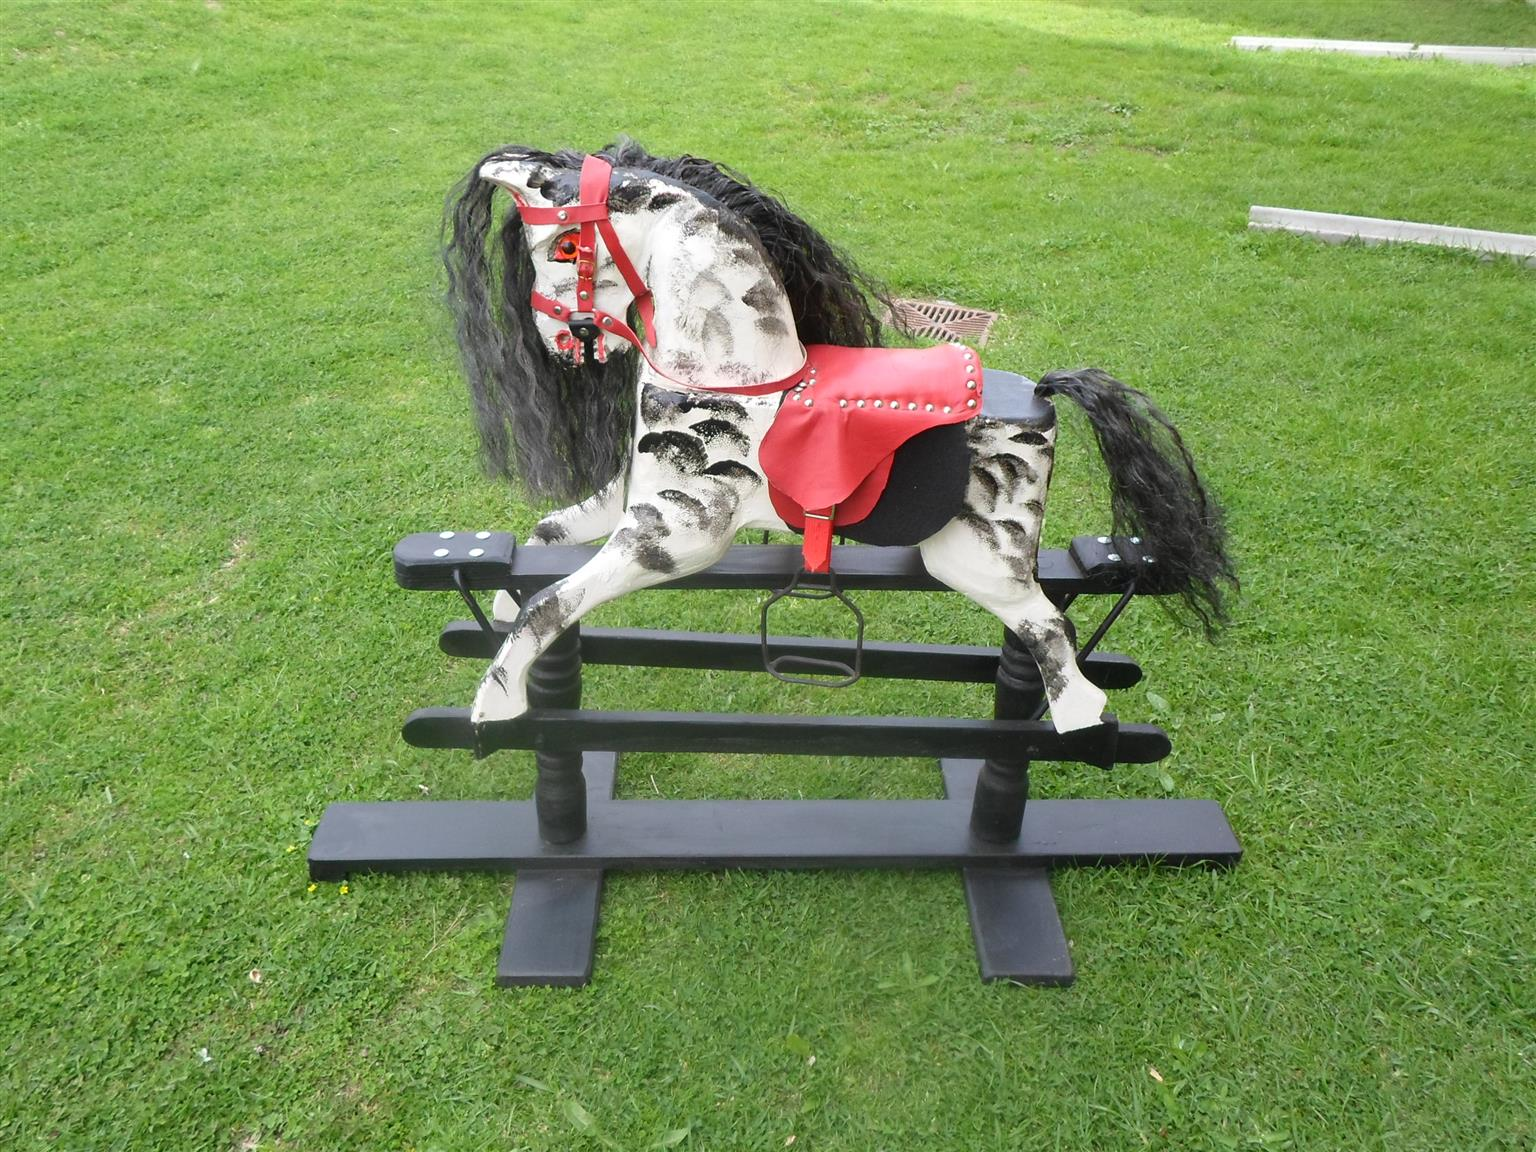 Carved Rocking Horse for Kids 3 to 8 years old